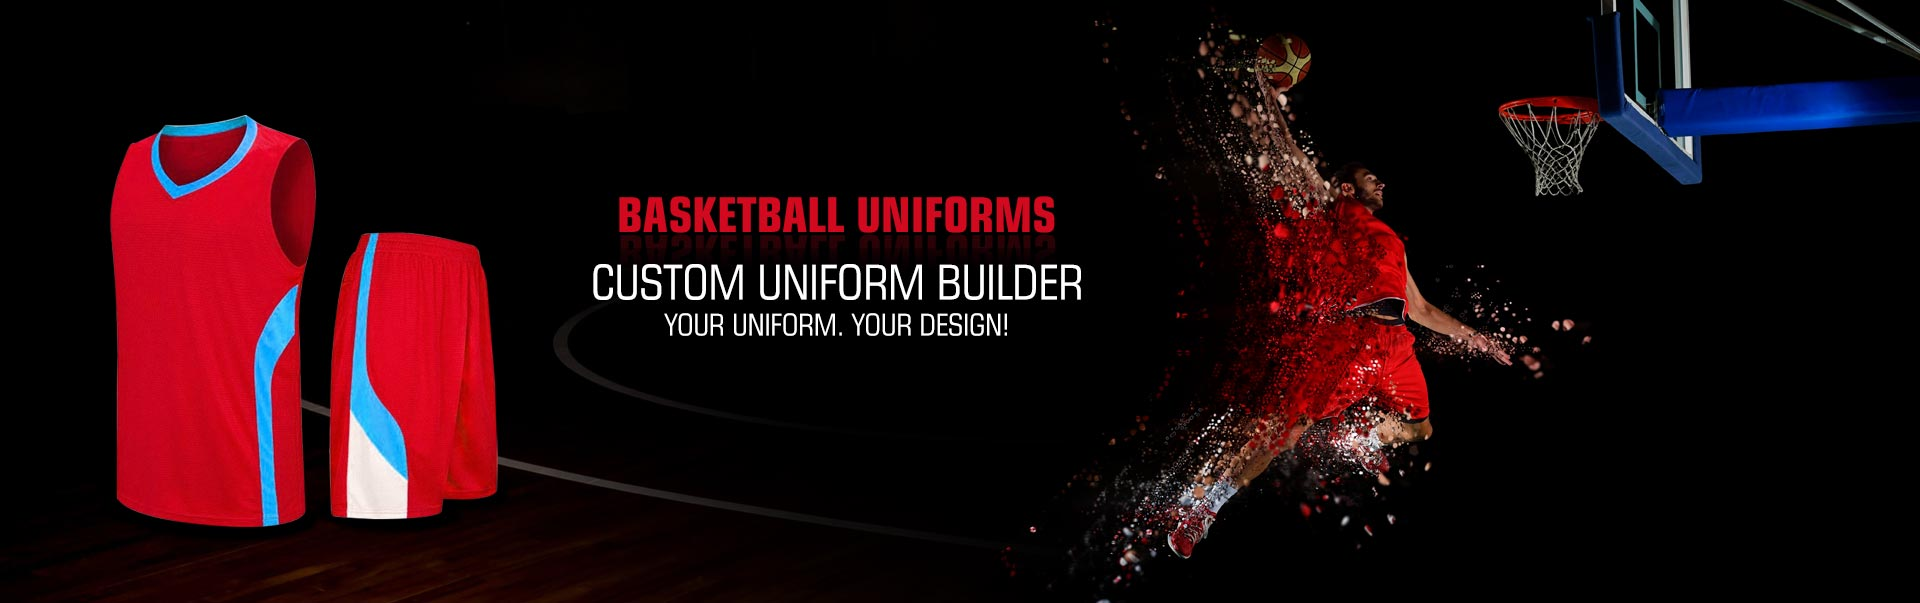 Basketball Uniforms Wholesaler, Suppliers in Philadelphia